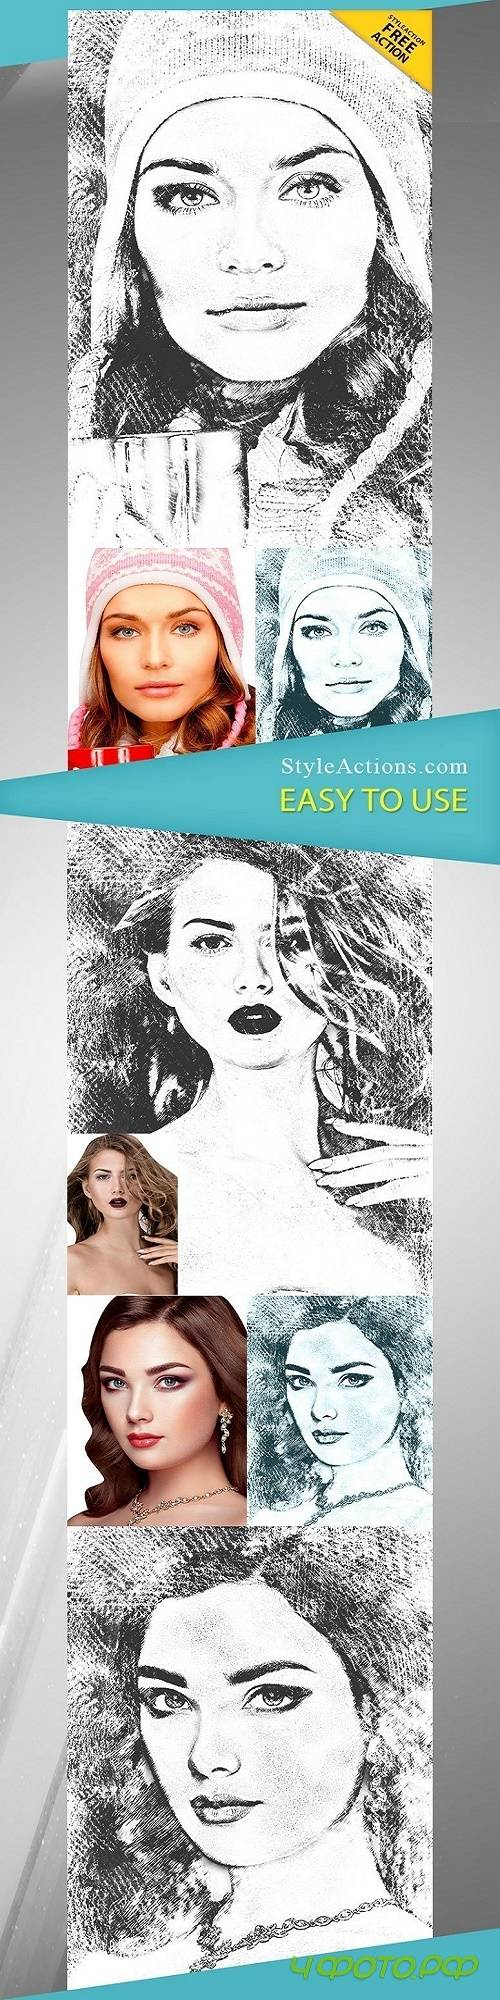 StyleActions - Pencil Sketch Photoshop Action